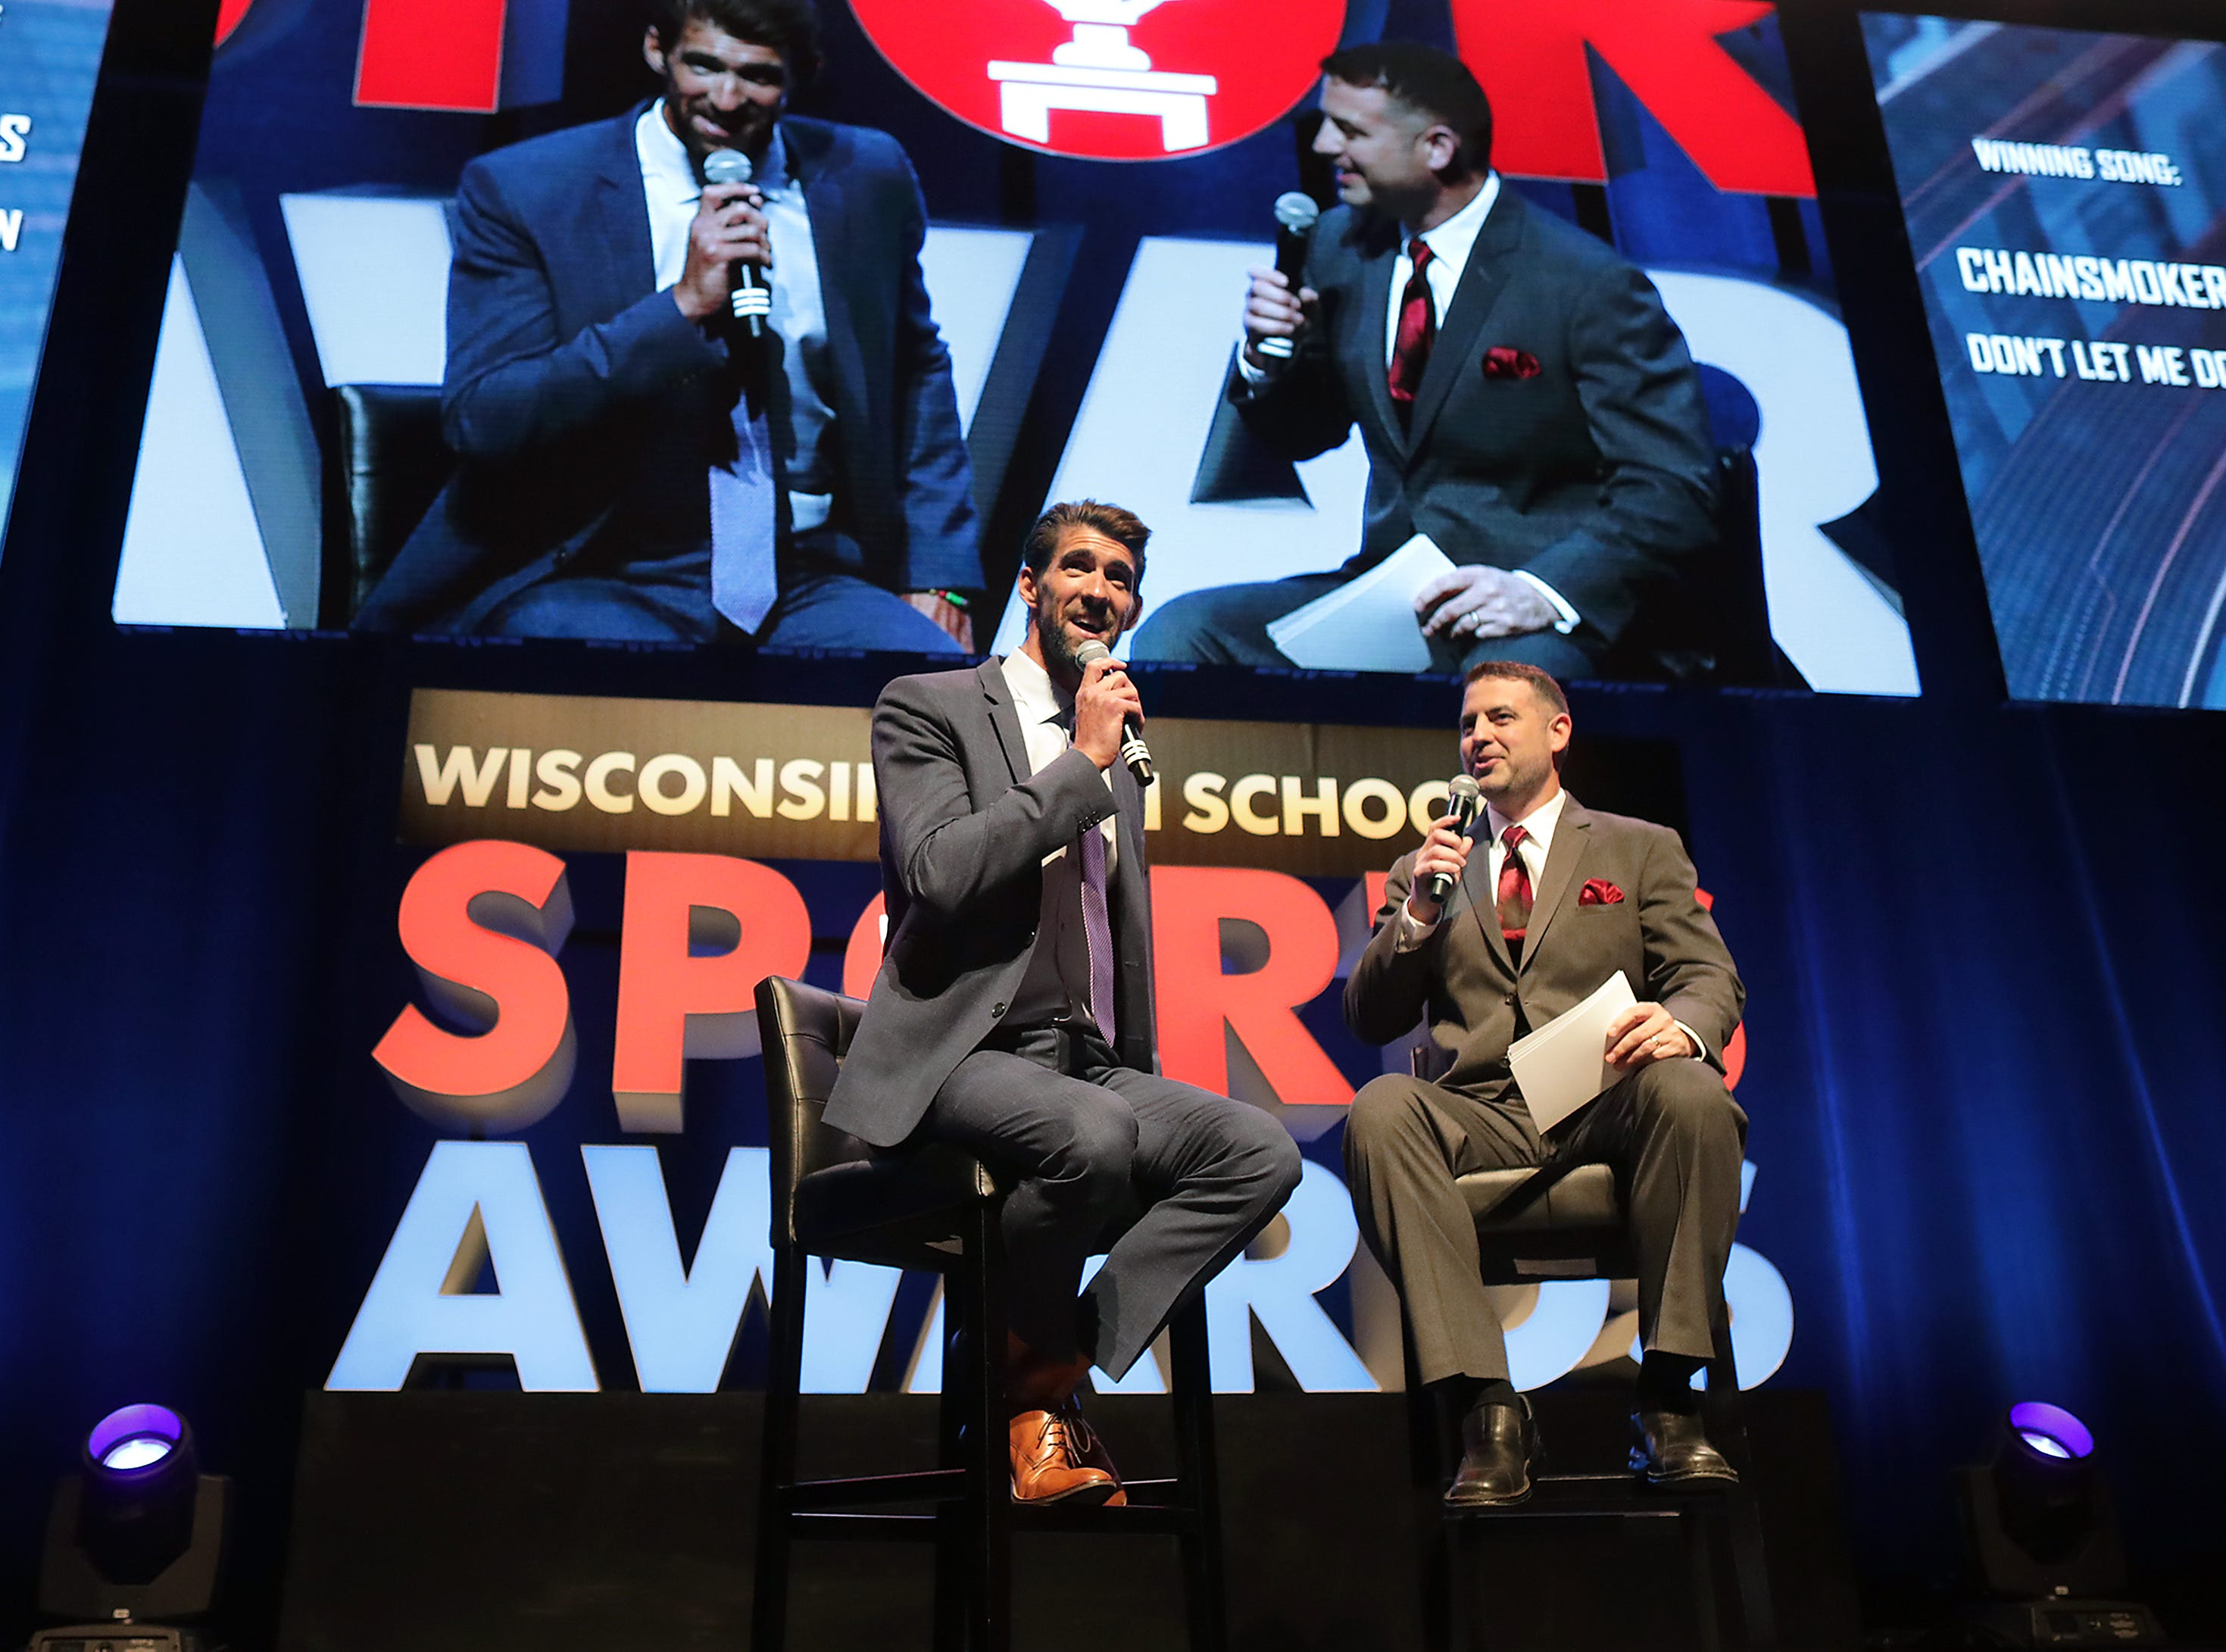 Olympic champion Michael Phelps talks with, host, Brett Christopherson during the Wisconsin High School Sports Awards show at the Fox Cities Performing Arts Center on Wednesday, May 8, 2019, in Appleton, Wis. The annaul event was presented by USA TODAY NETWORK-Wisconsin. 